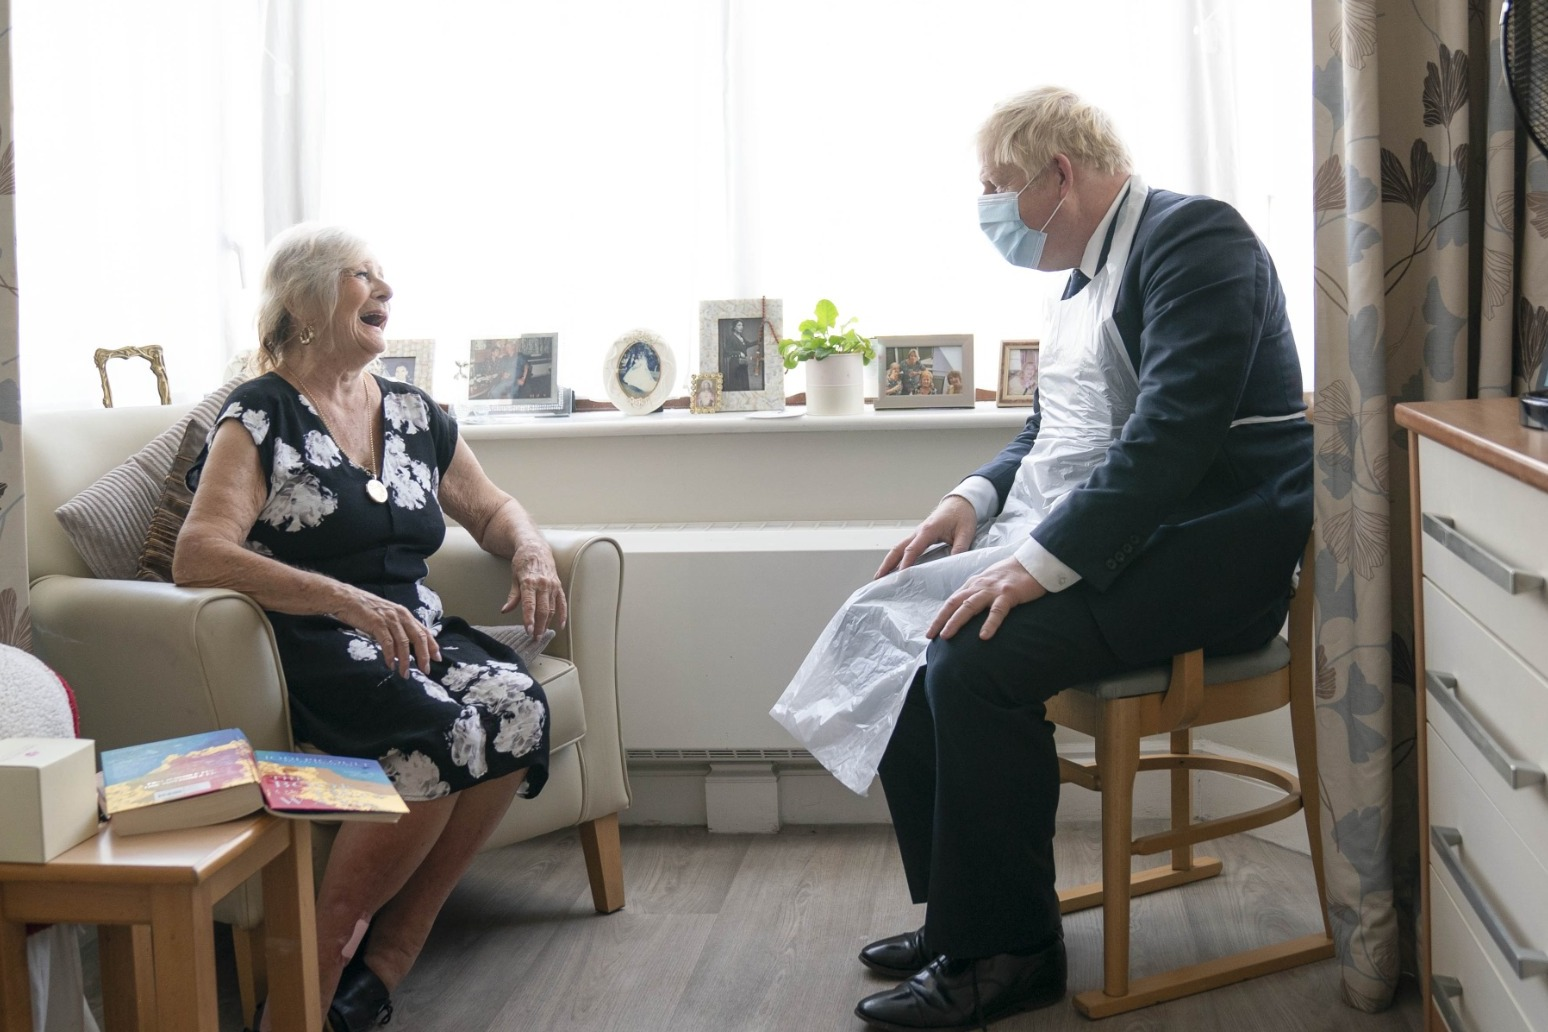 Plans unveiled for 'biggest catch-up programme' in the health service's history